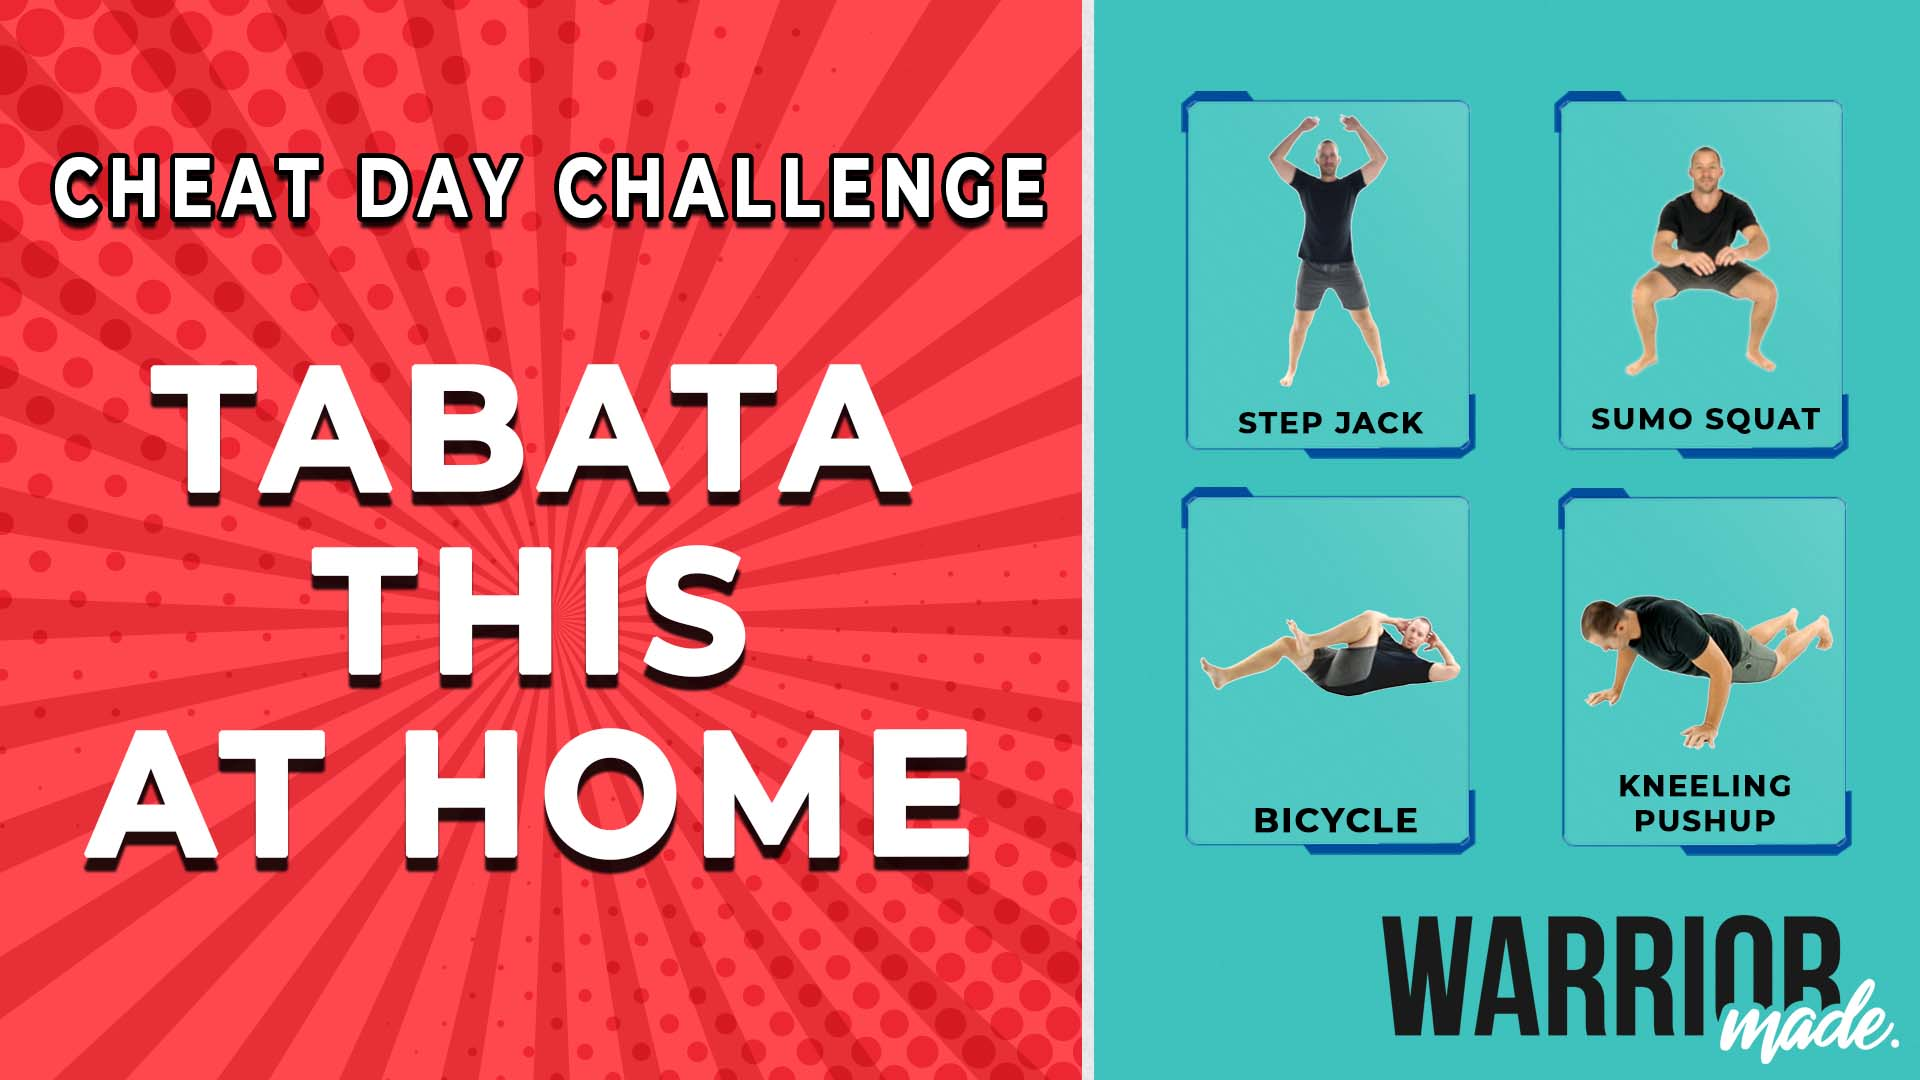 cheat-day-challenge-tabata-this-at-home